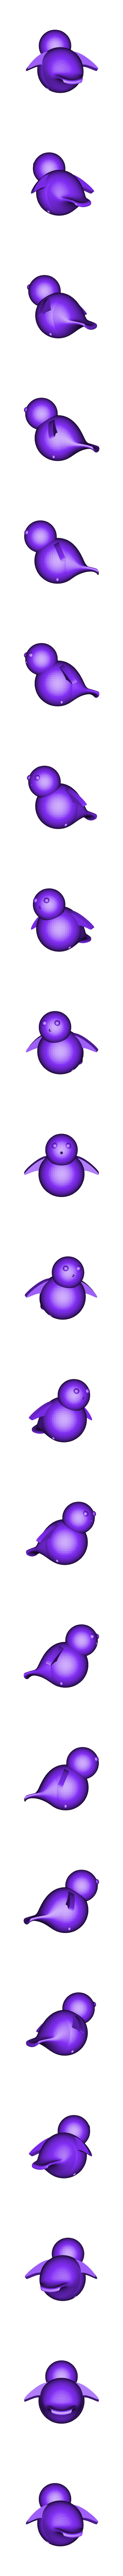 Chick body.STL Download free STL file Poussin, inspired by emoticon • 3D printer object, Tacol